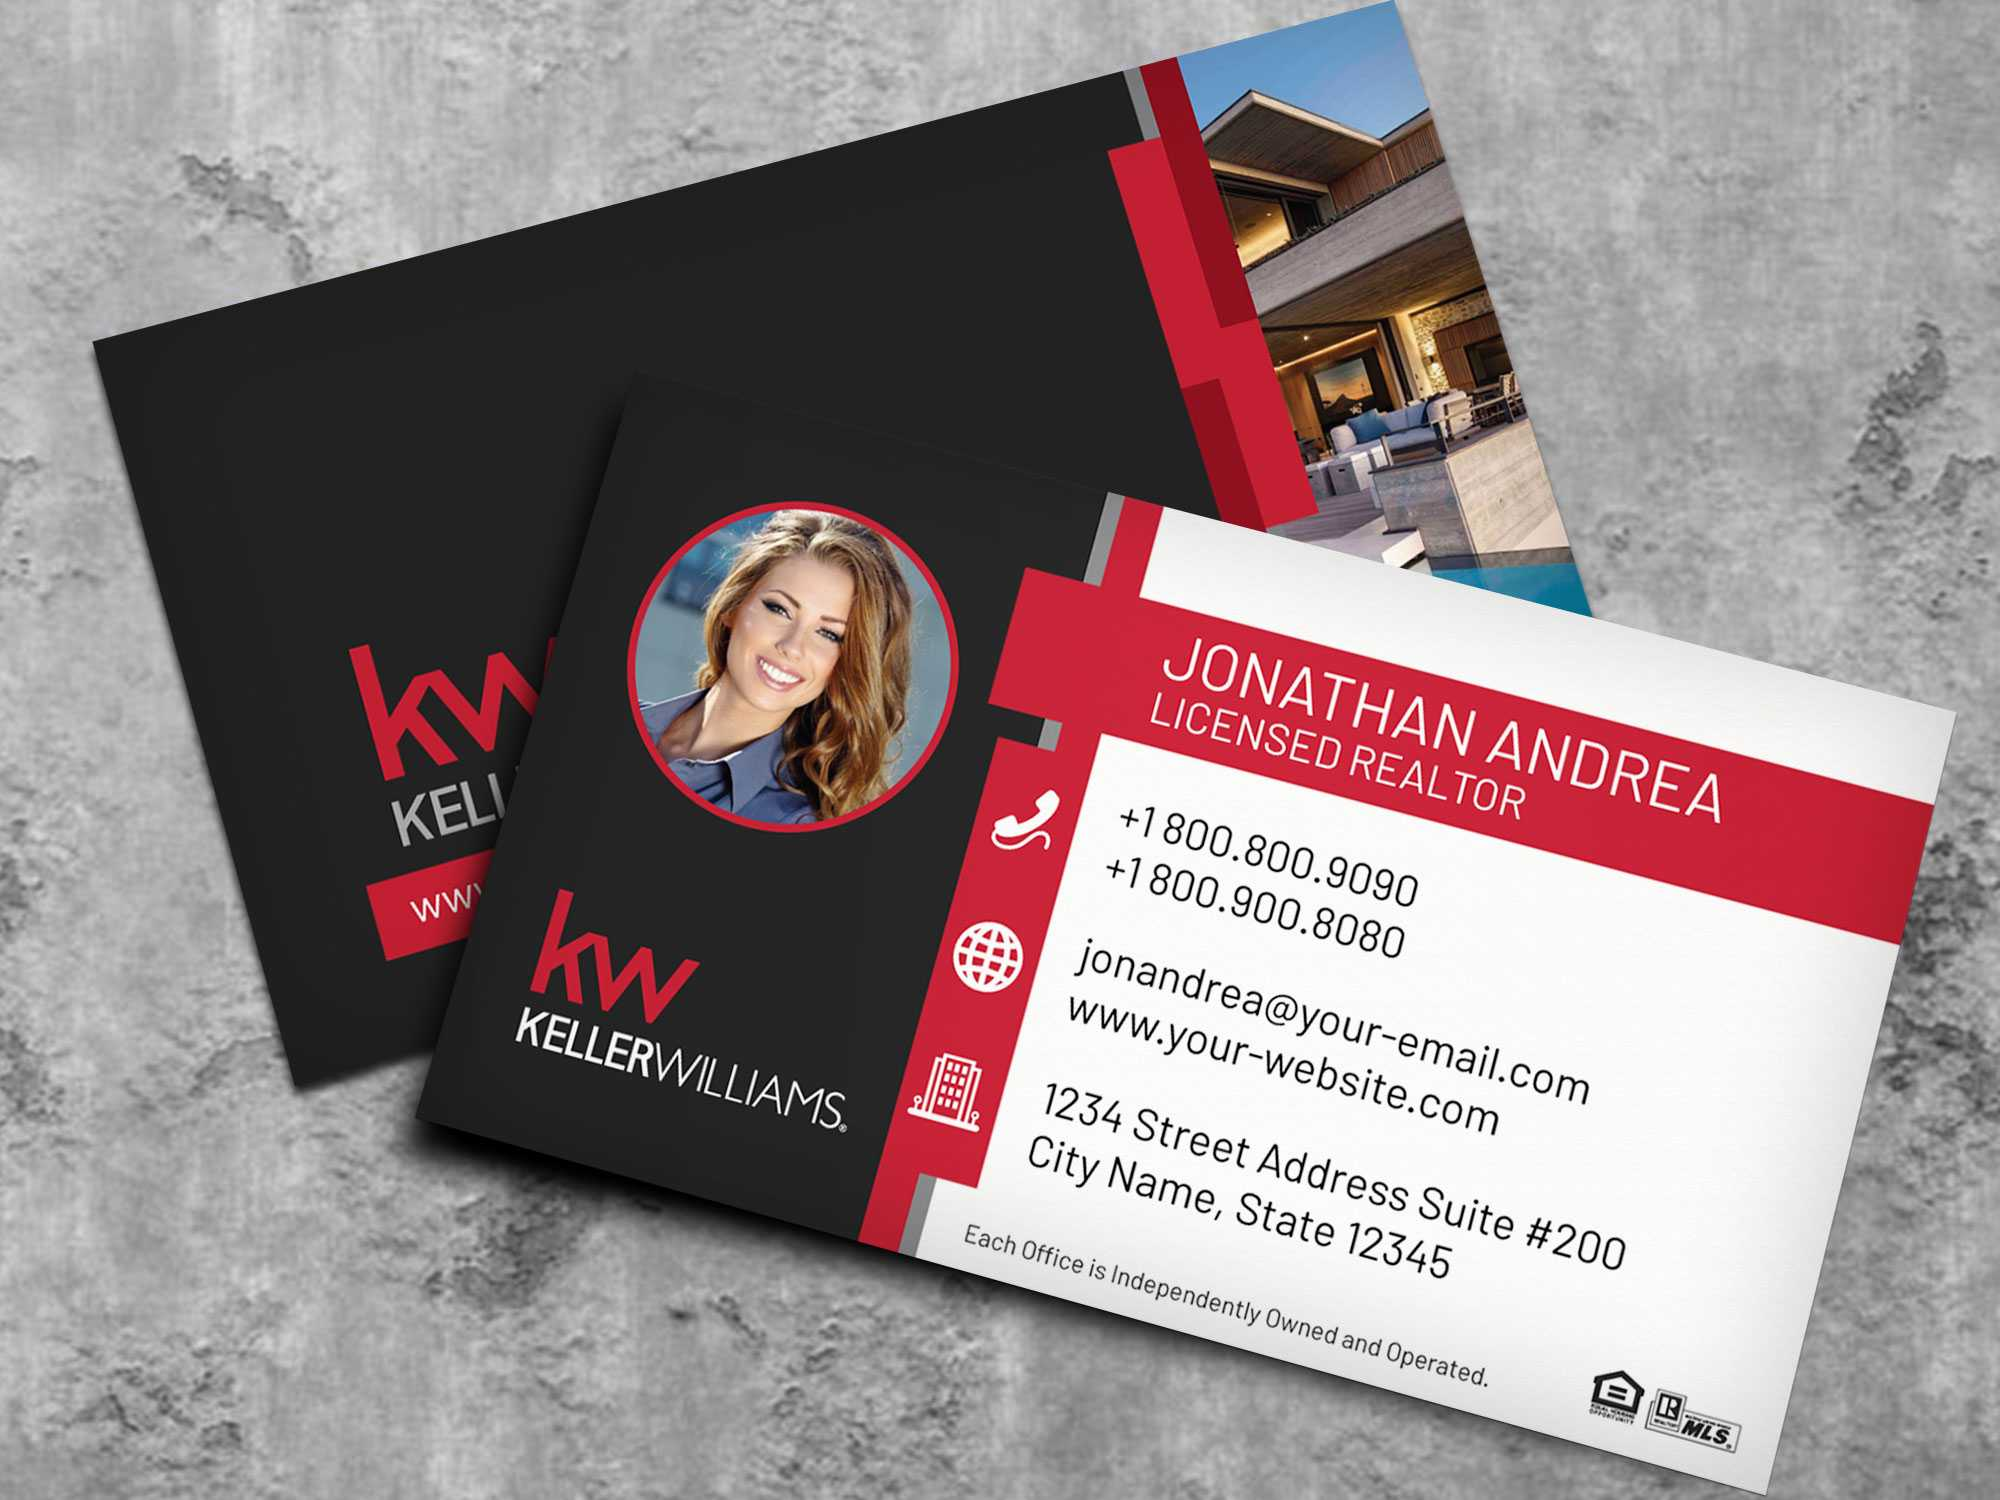 Keller Williams Business Card Template Bc19702Kw - Nusacreative Throughout Keller Williams Business Card Templates